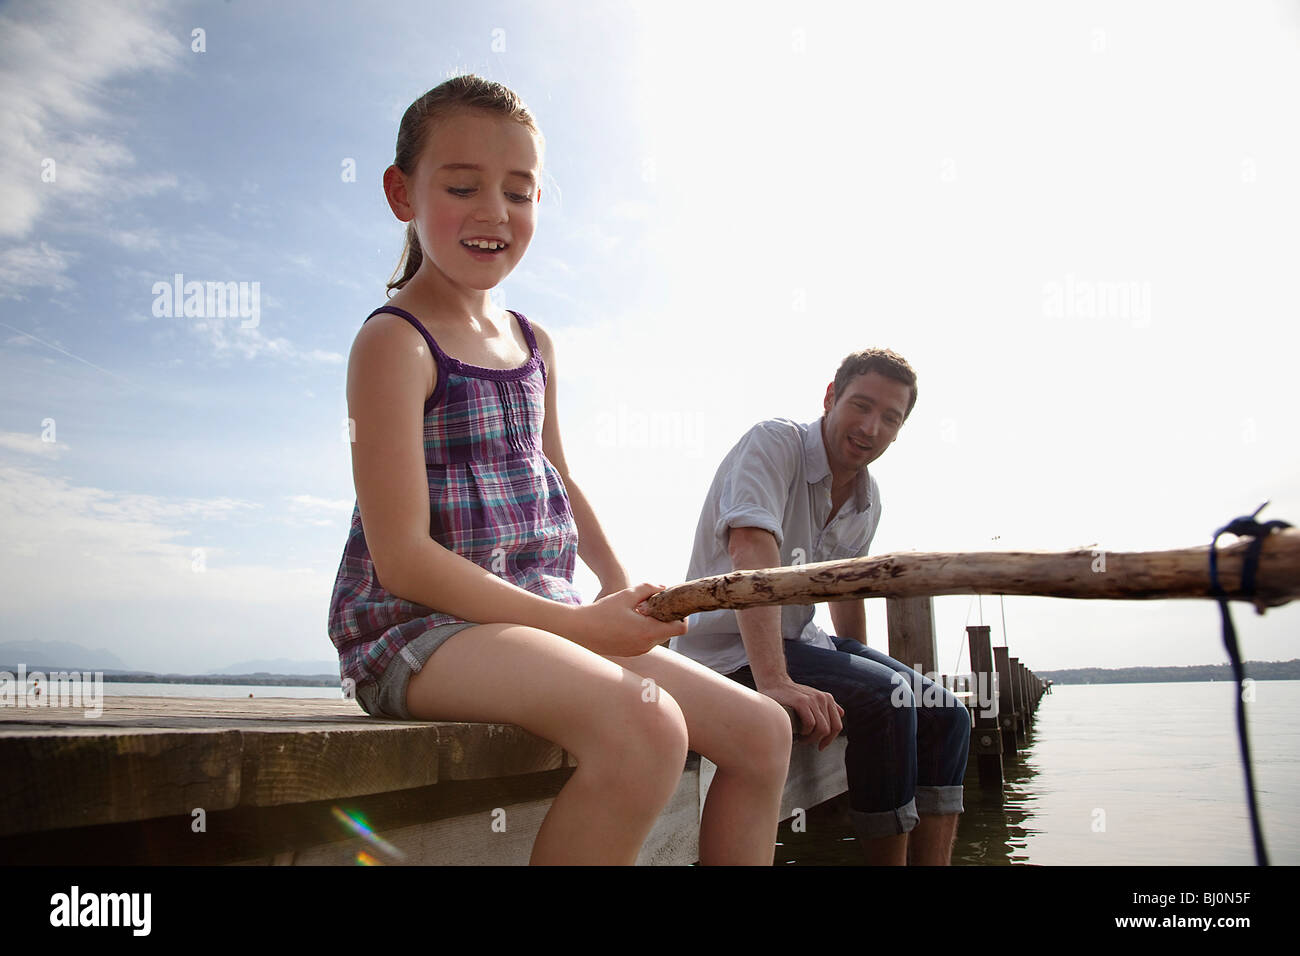 father and daughter on pier angling together - Stock Image